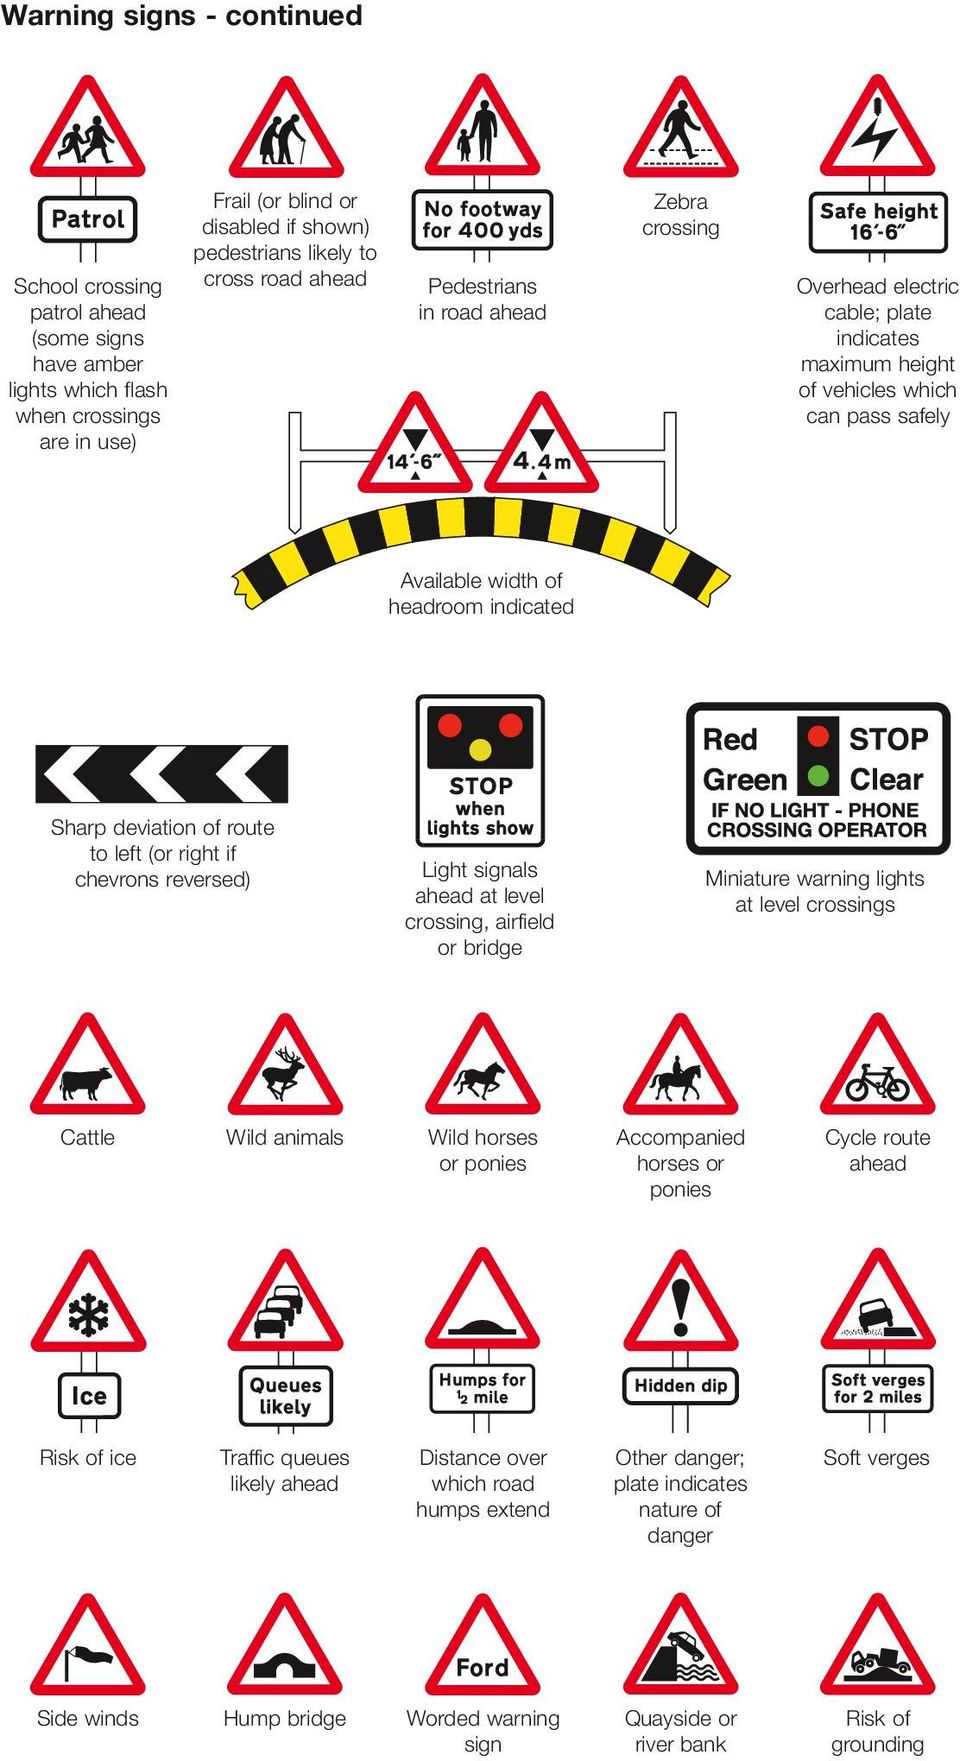 to left (or right if chevrons reversed) Light signals ahead at level crossing, airfield or bridge Miniature warning lights at level crossings Cattle Wild animals Wild horses or ponies Accompanied